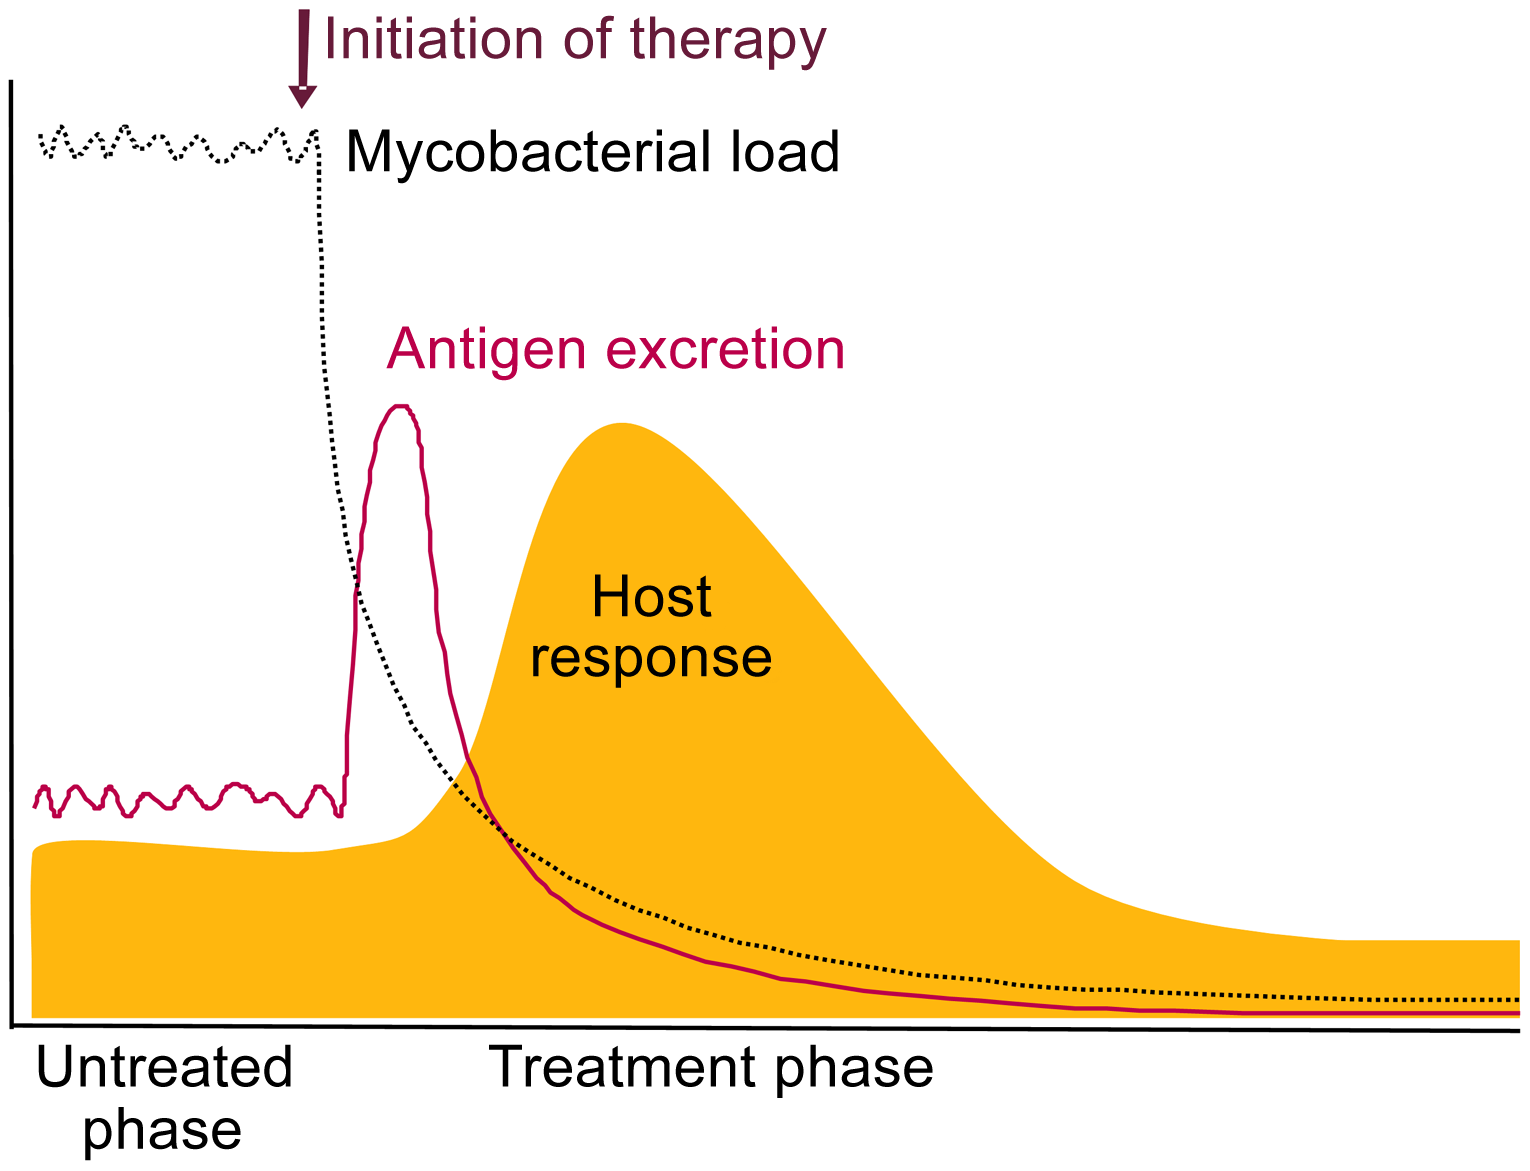 Schematic representation of the expected release of TB antigens and consequential host antibody response upon initiation of treatment.